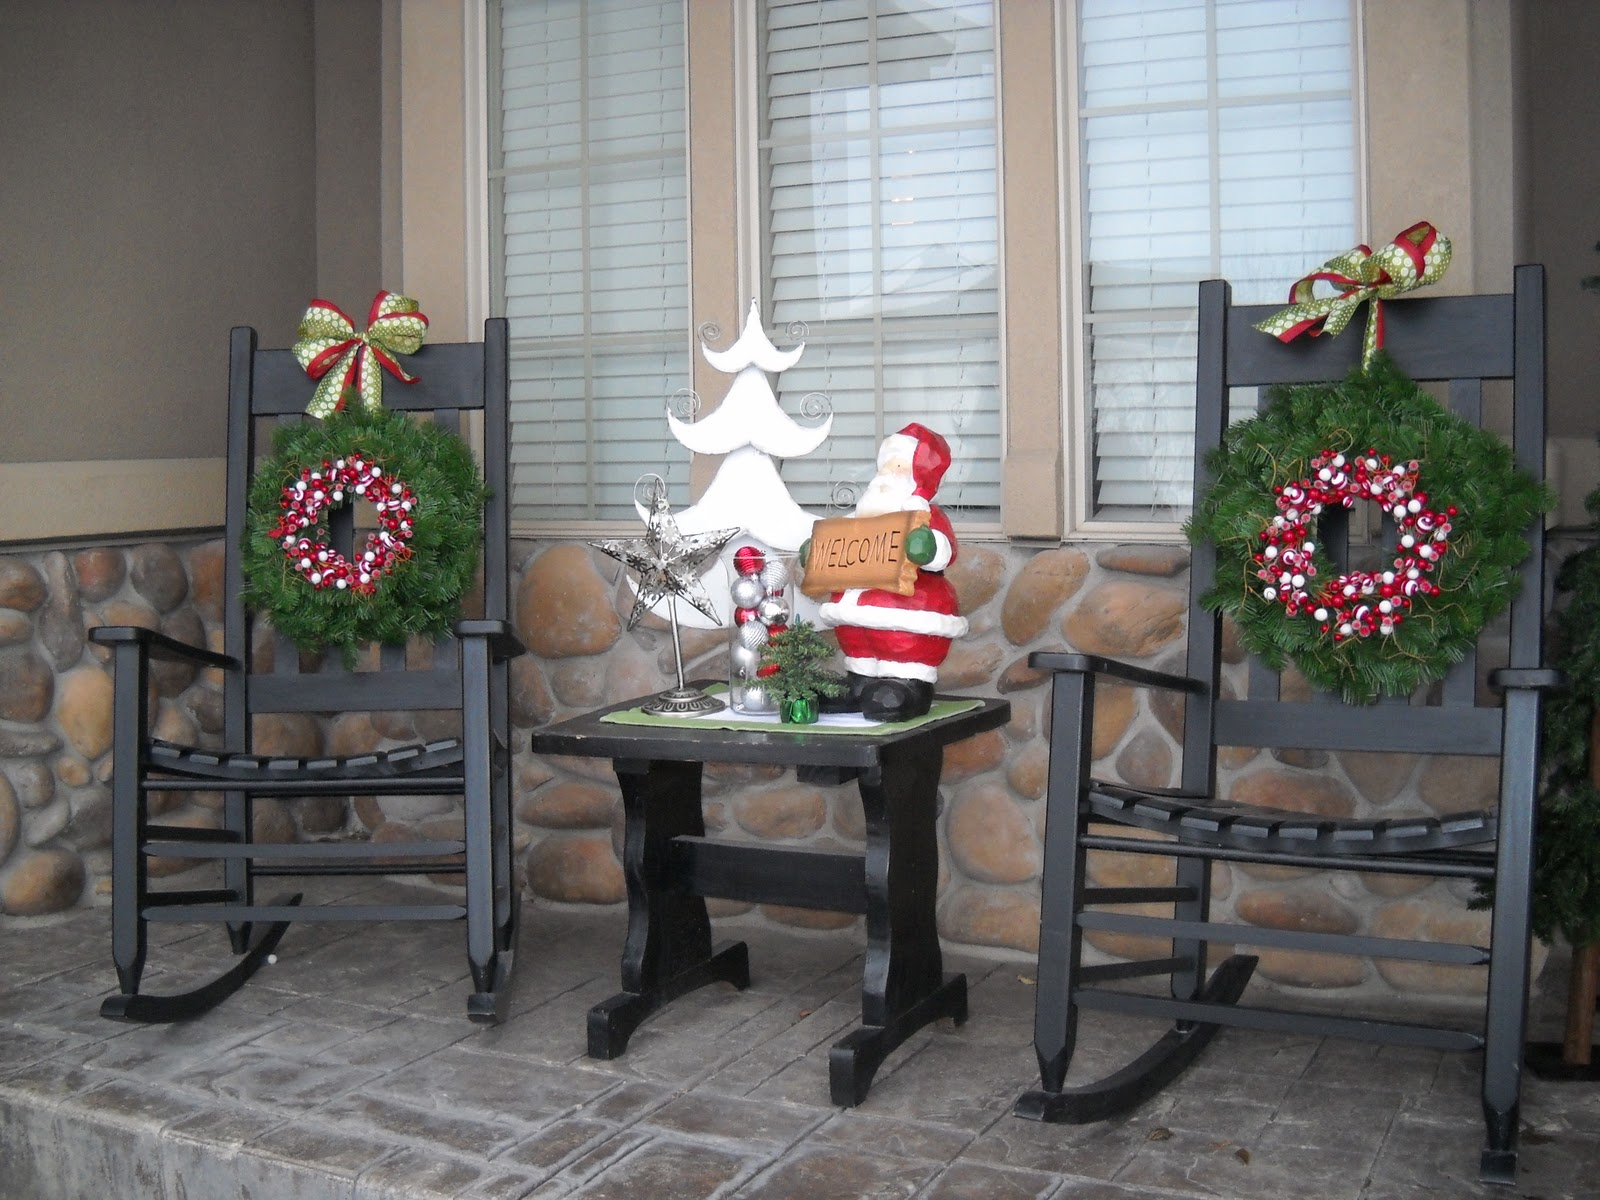 do it yourself duo front porch decor continued. Black Bedroom Furniture Sets. Home Design Ideas